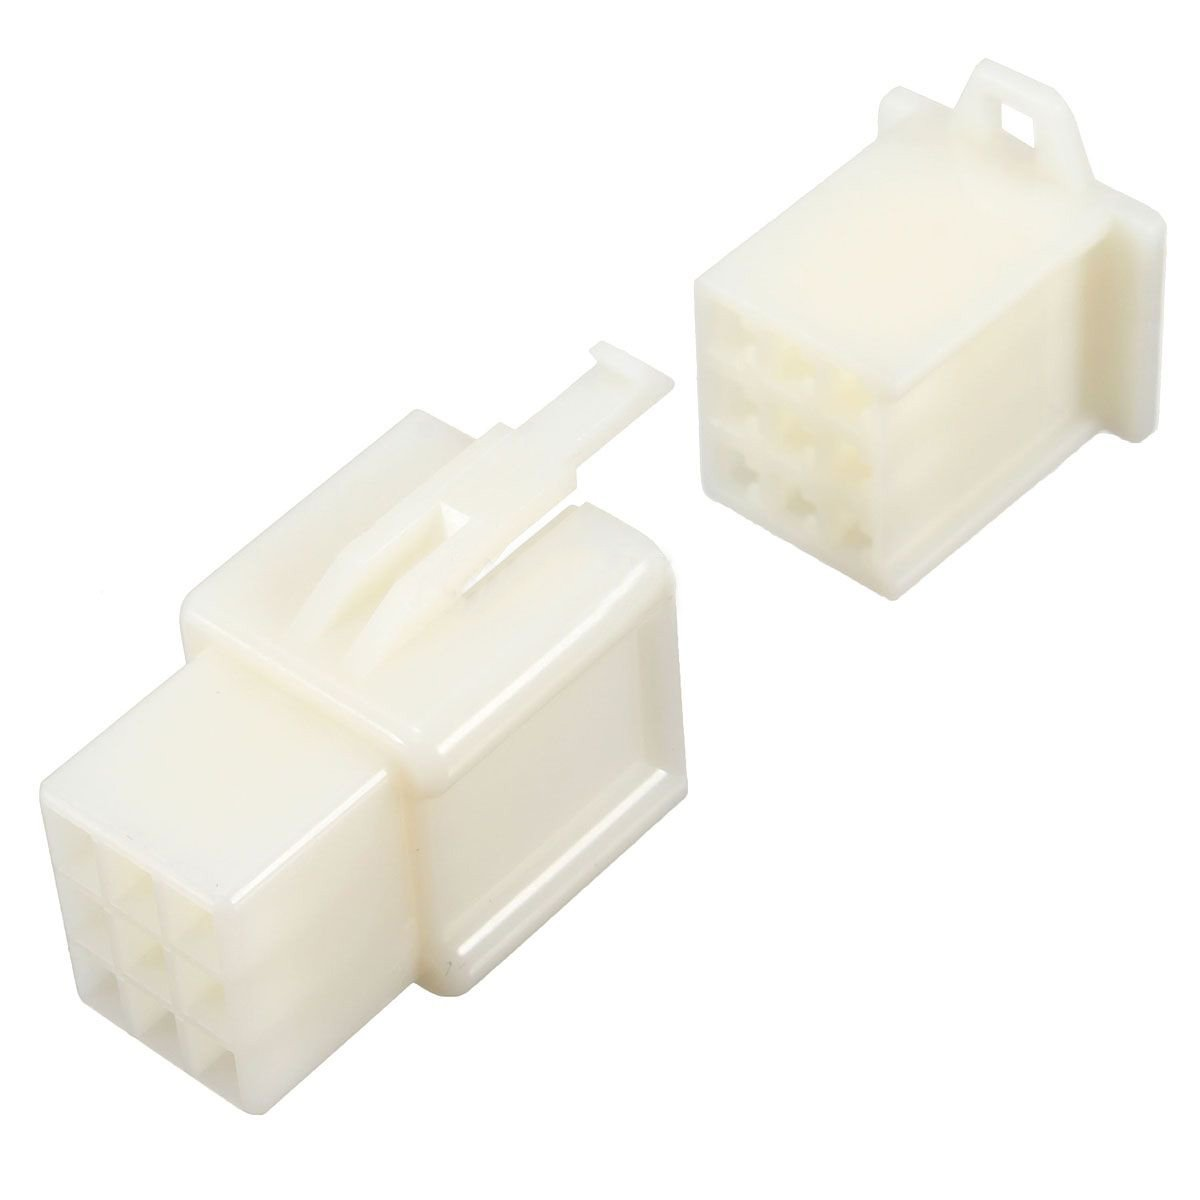 Connector Kit - TOOGOO(R) 5x 9 Way 2.8mm Mini Connector Kit Car Motorcycle Pin Terminal Blade ATV White by TOOGOO(R) (Image #1)